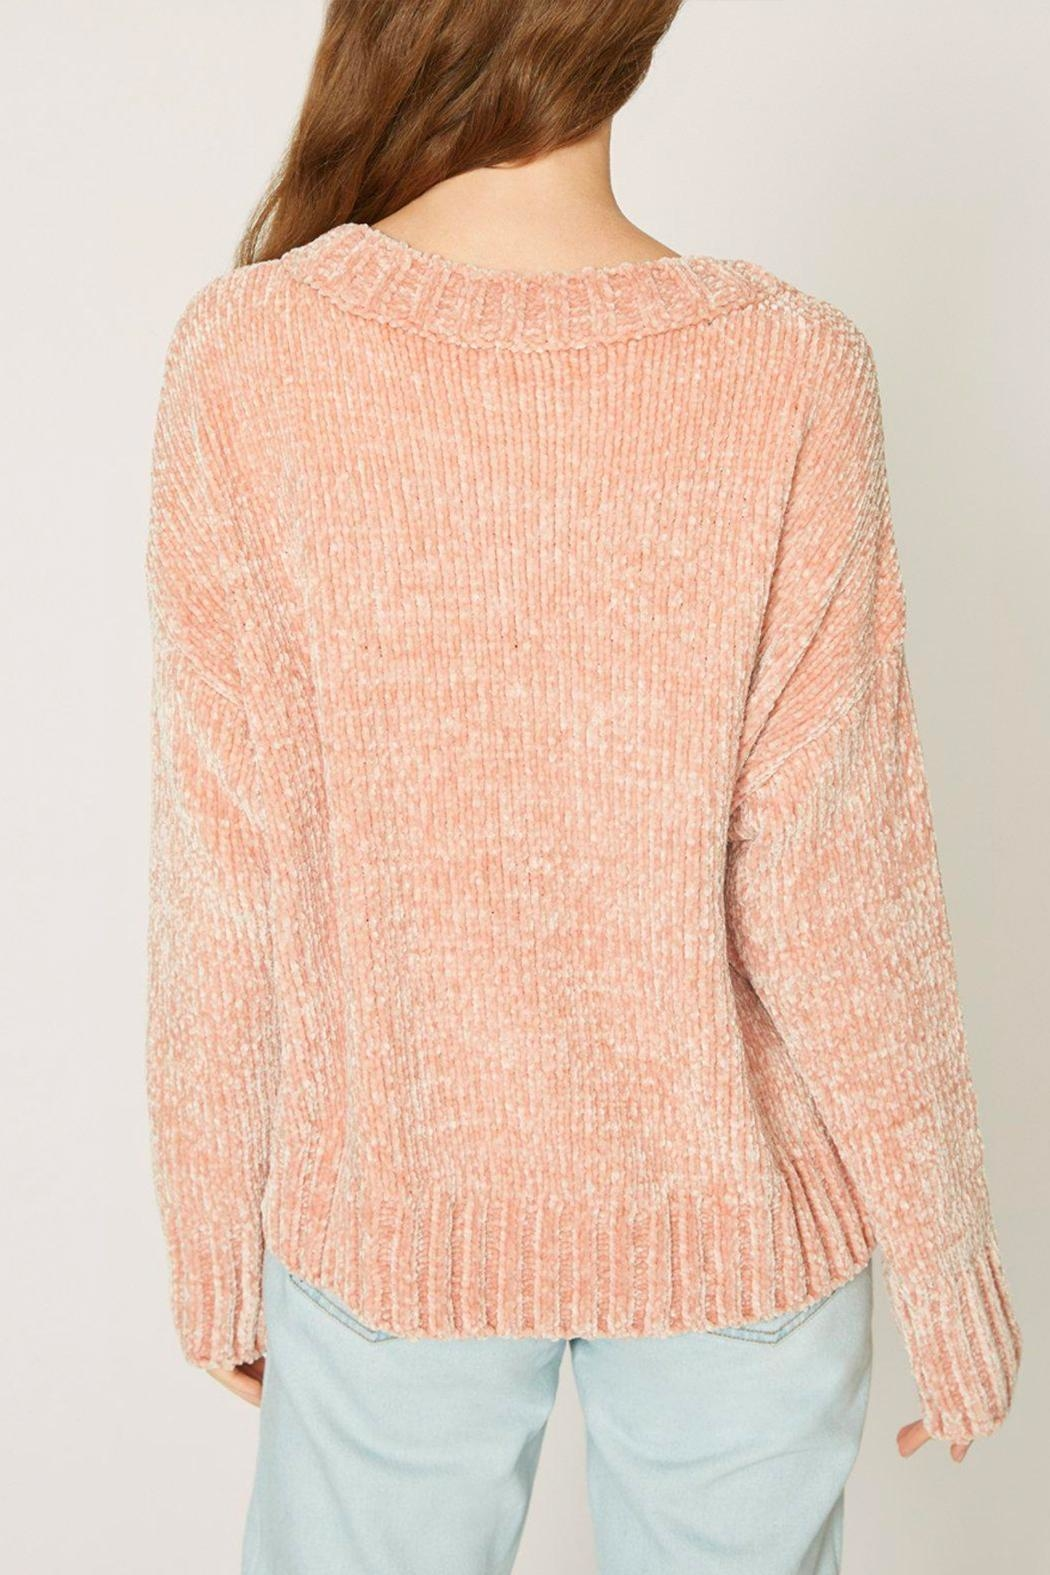 Sanctuary Chenille Pullover Sweater - Front Full Image